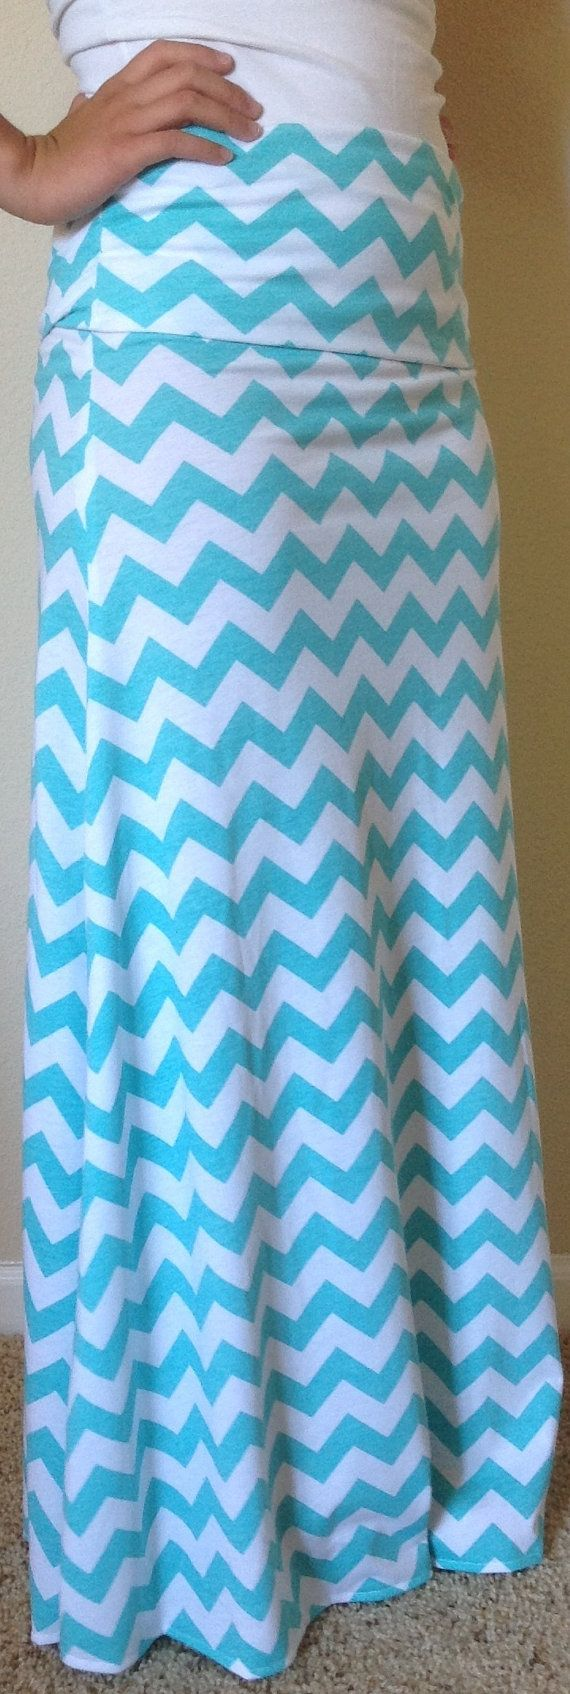 Hey, I found this really awesome Etsy listing at https://www.etsy.com/listing/130063789/tiffany-blue-and-white-chevron-maxi